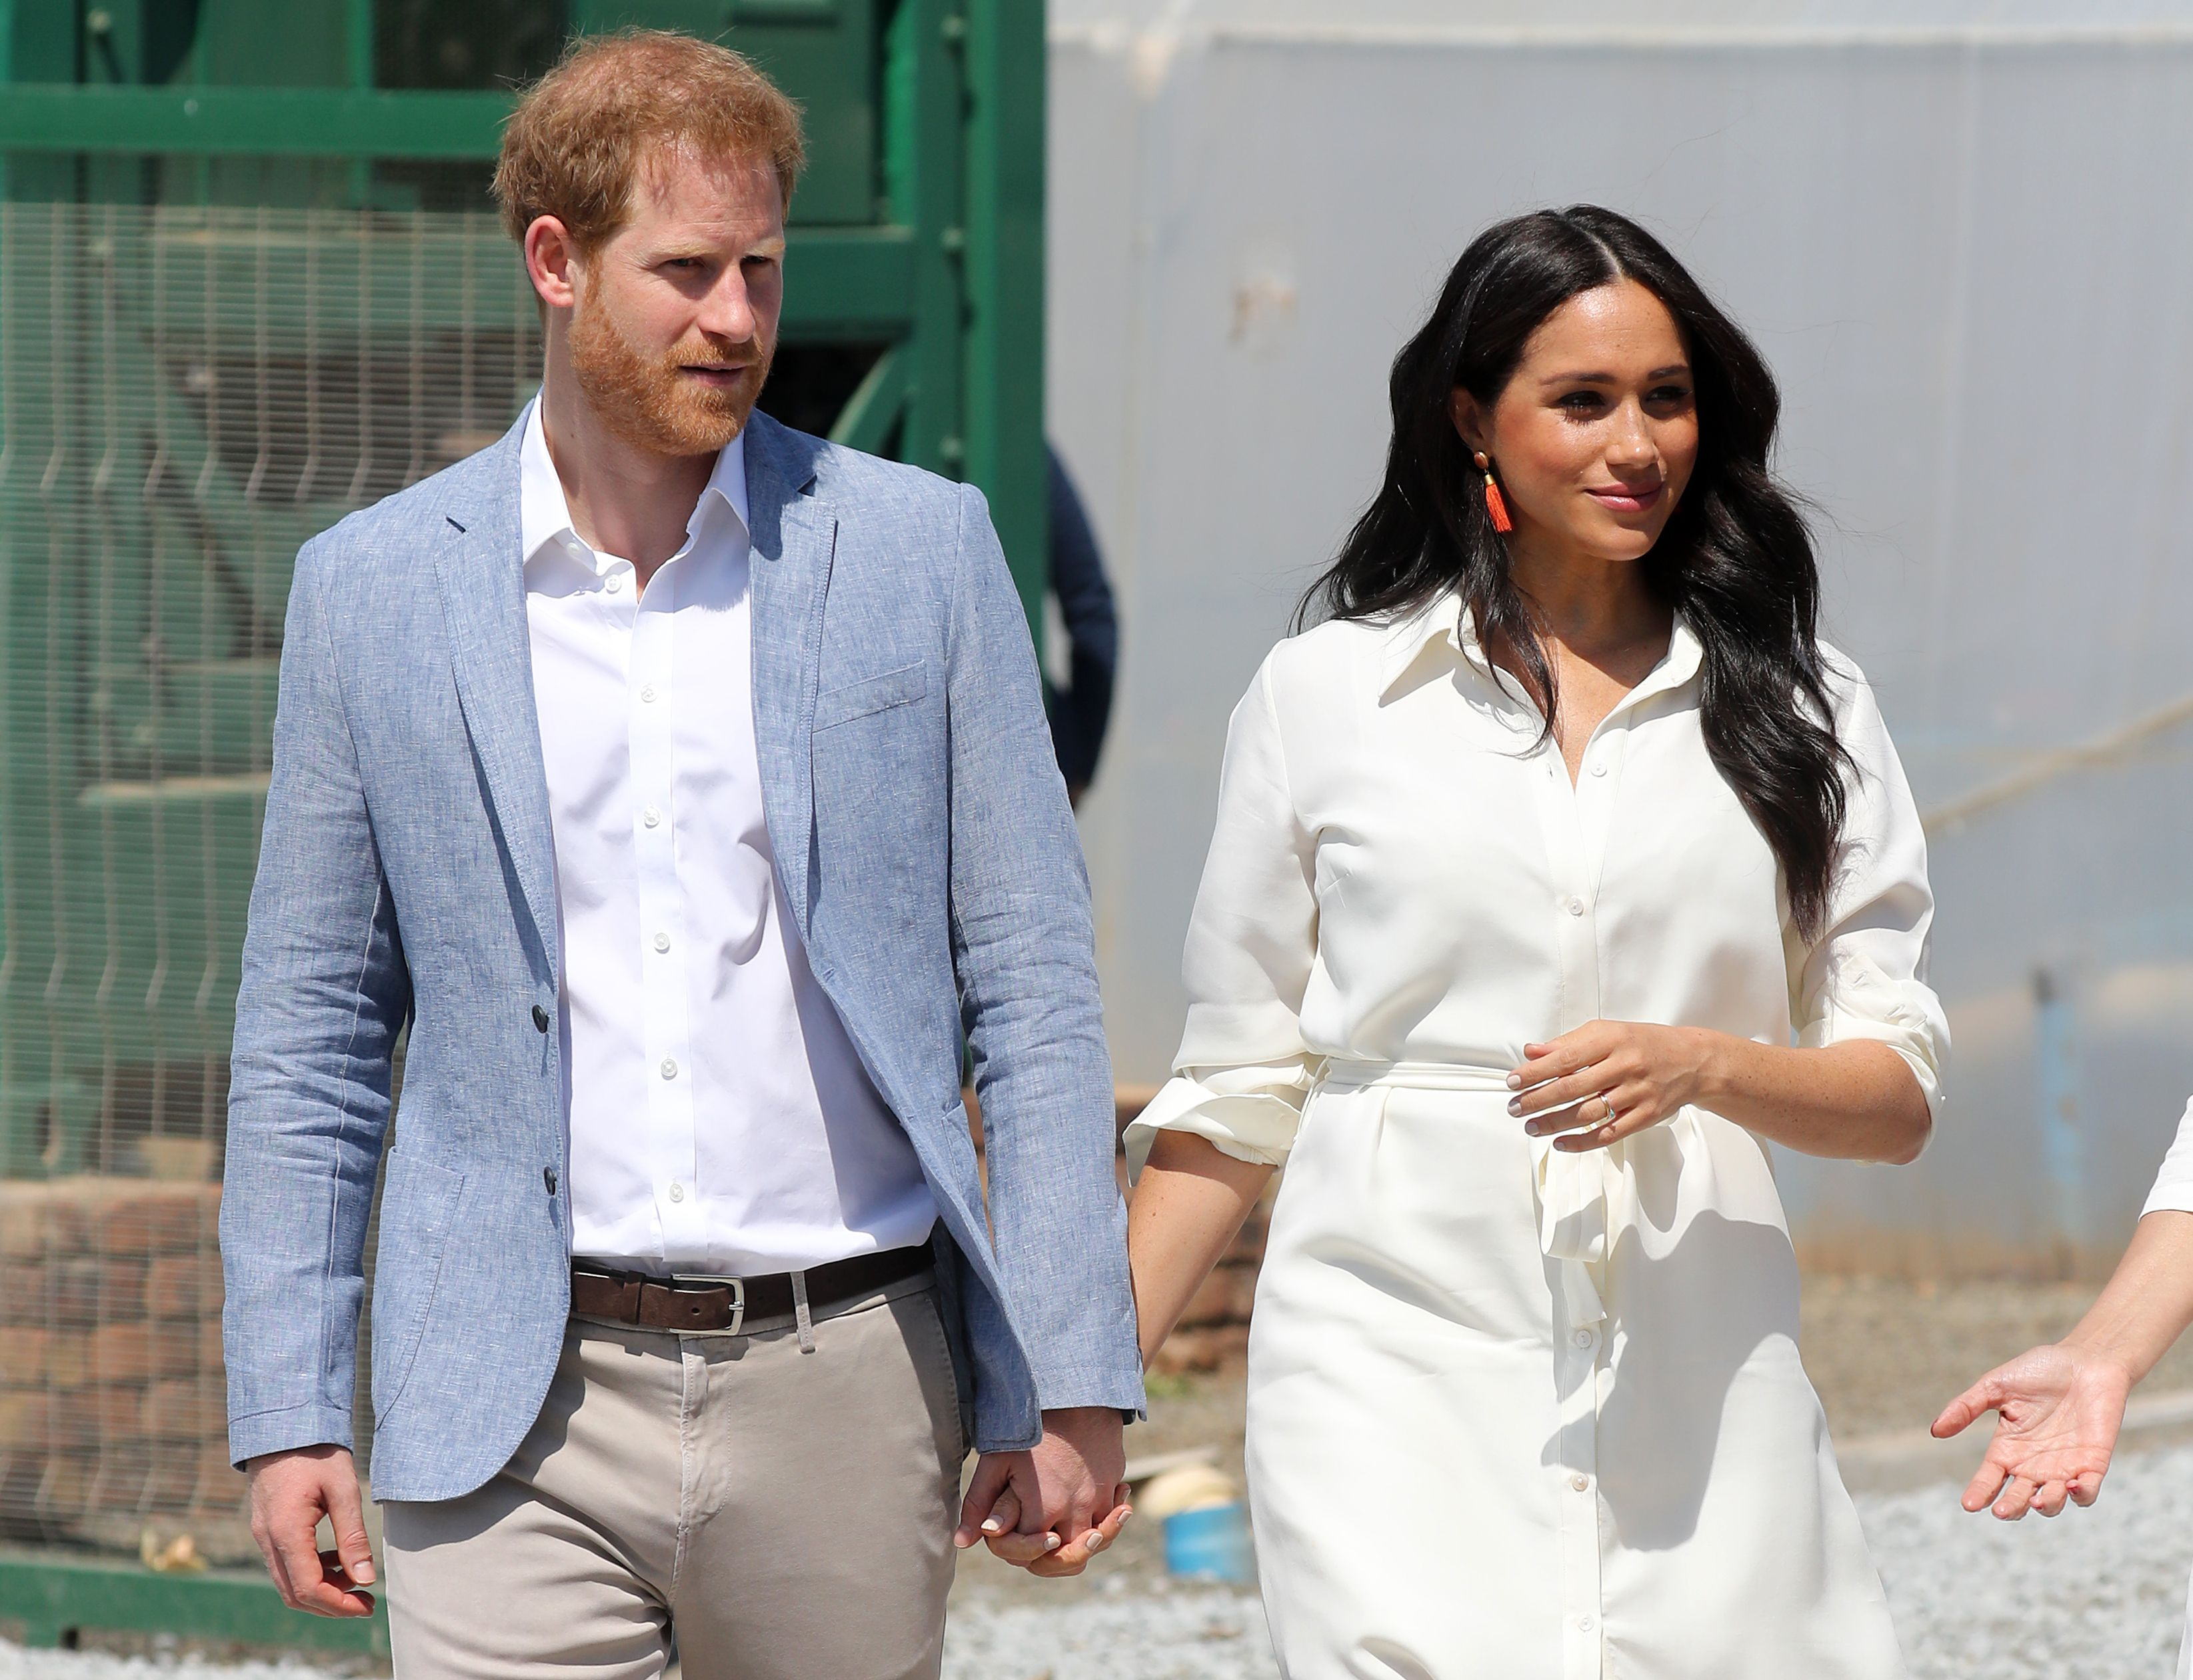 Meghan Markle and Prince Harry Are Shutting Down Their UK Charity